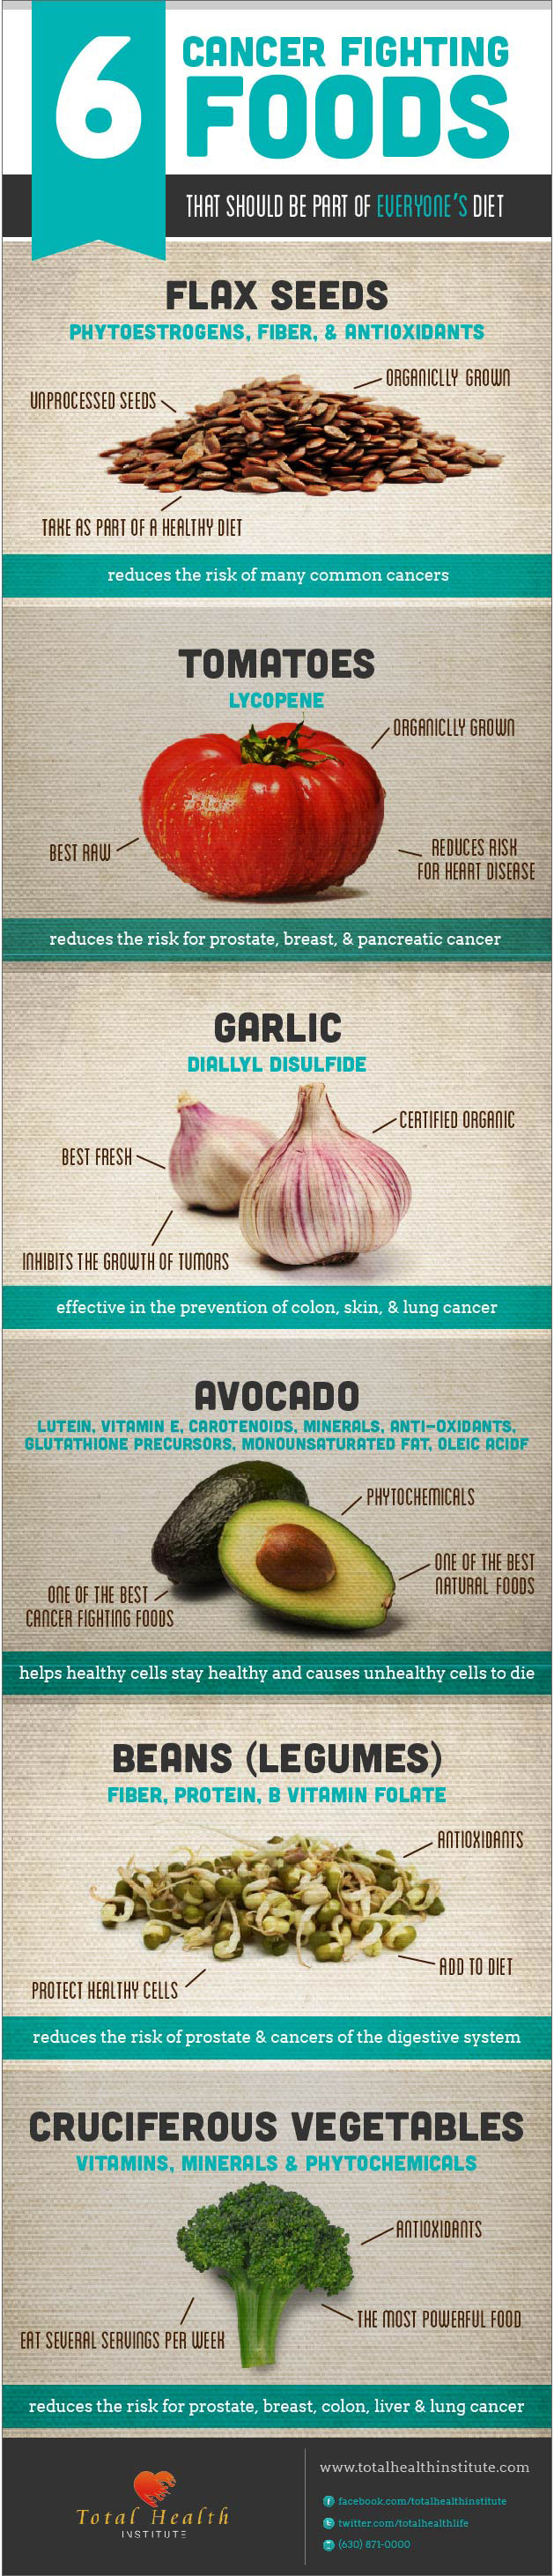 Cancer Foods Infographic